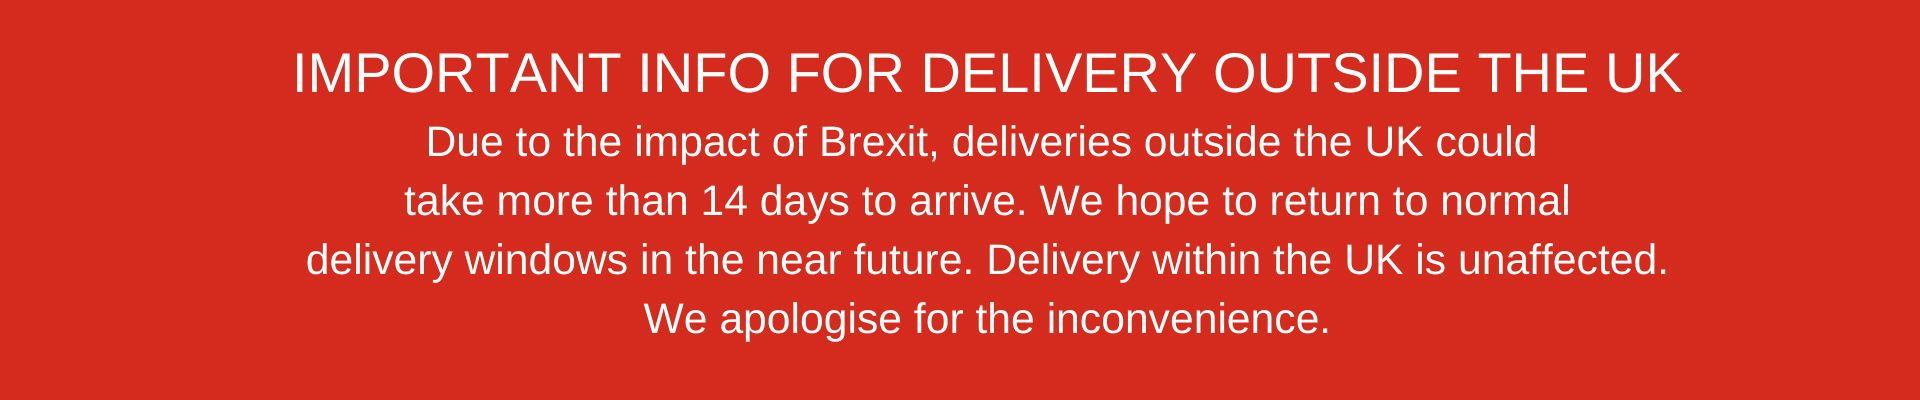 IMPORTANT INFO FOR DELIVERY OUTSIDE THE UK